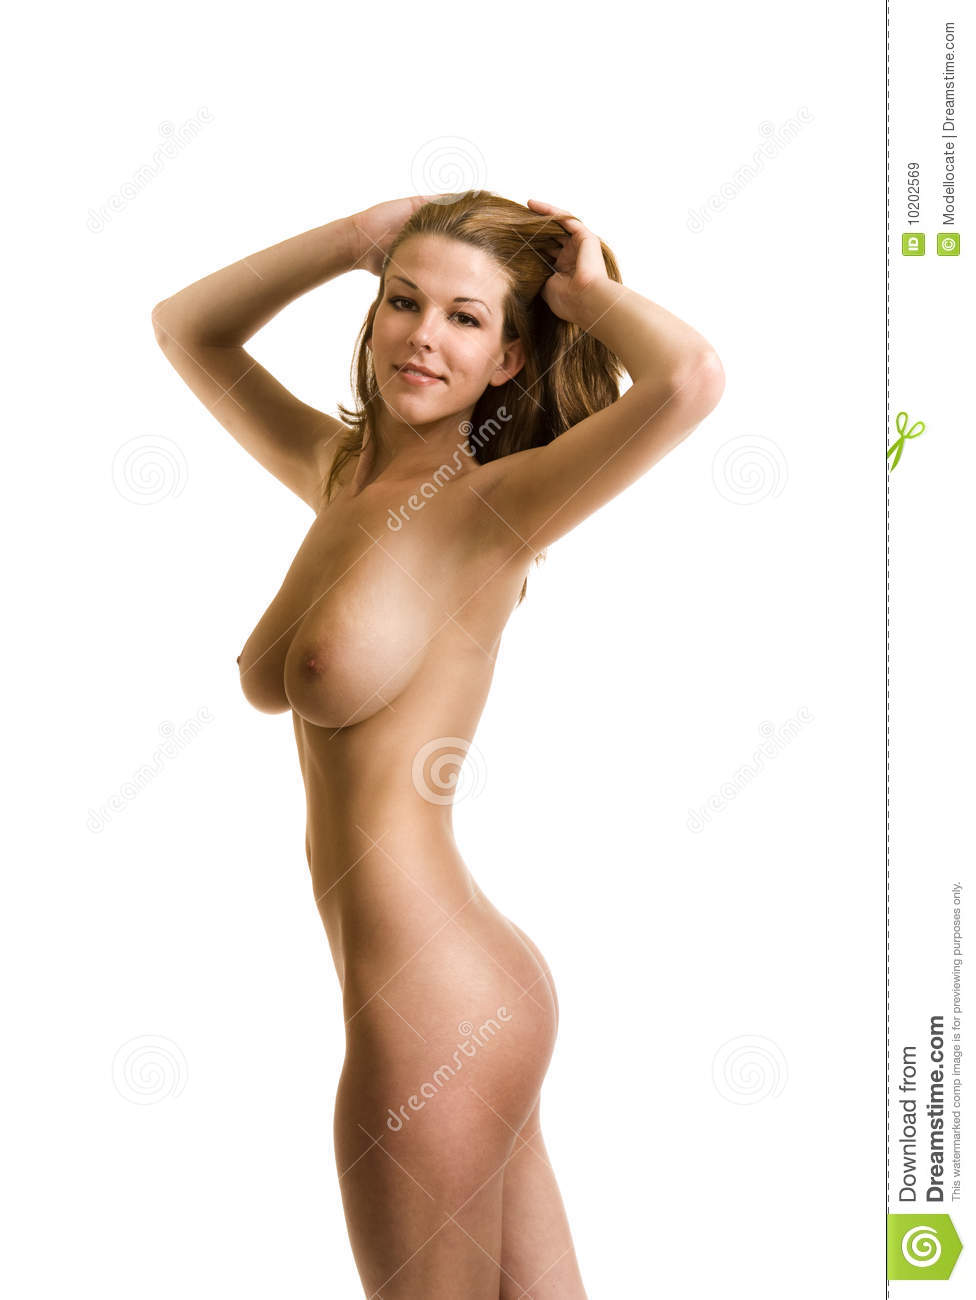 Naked Nude Female 95